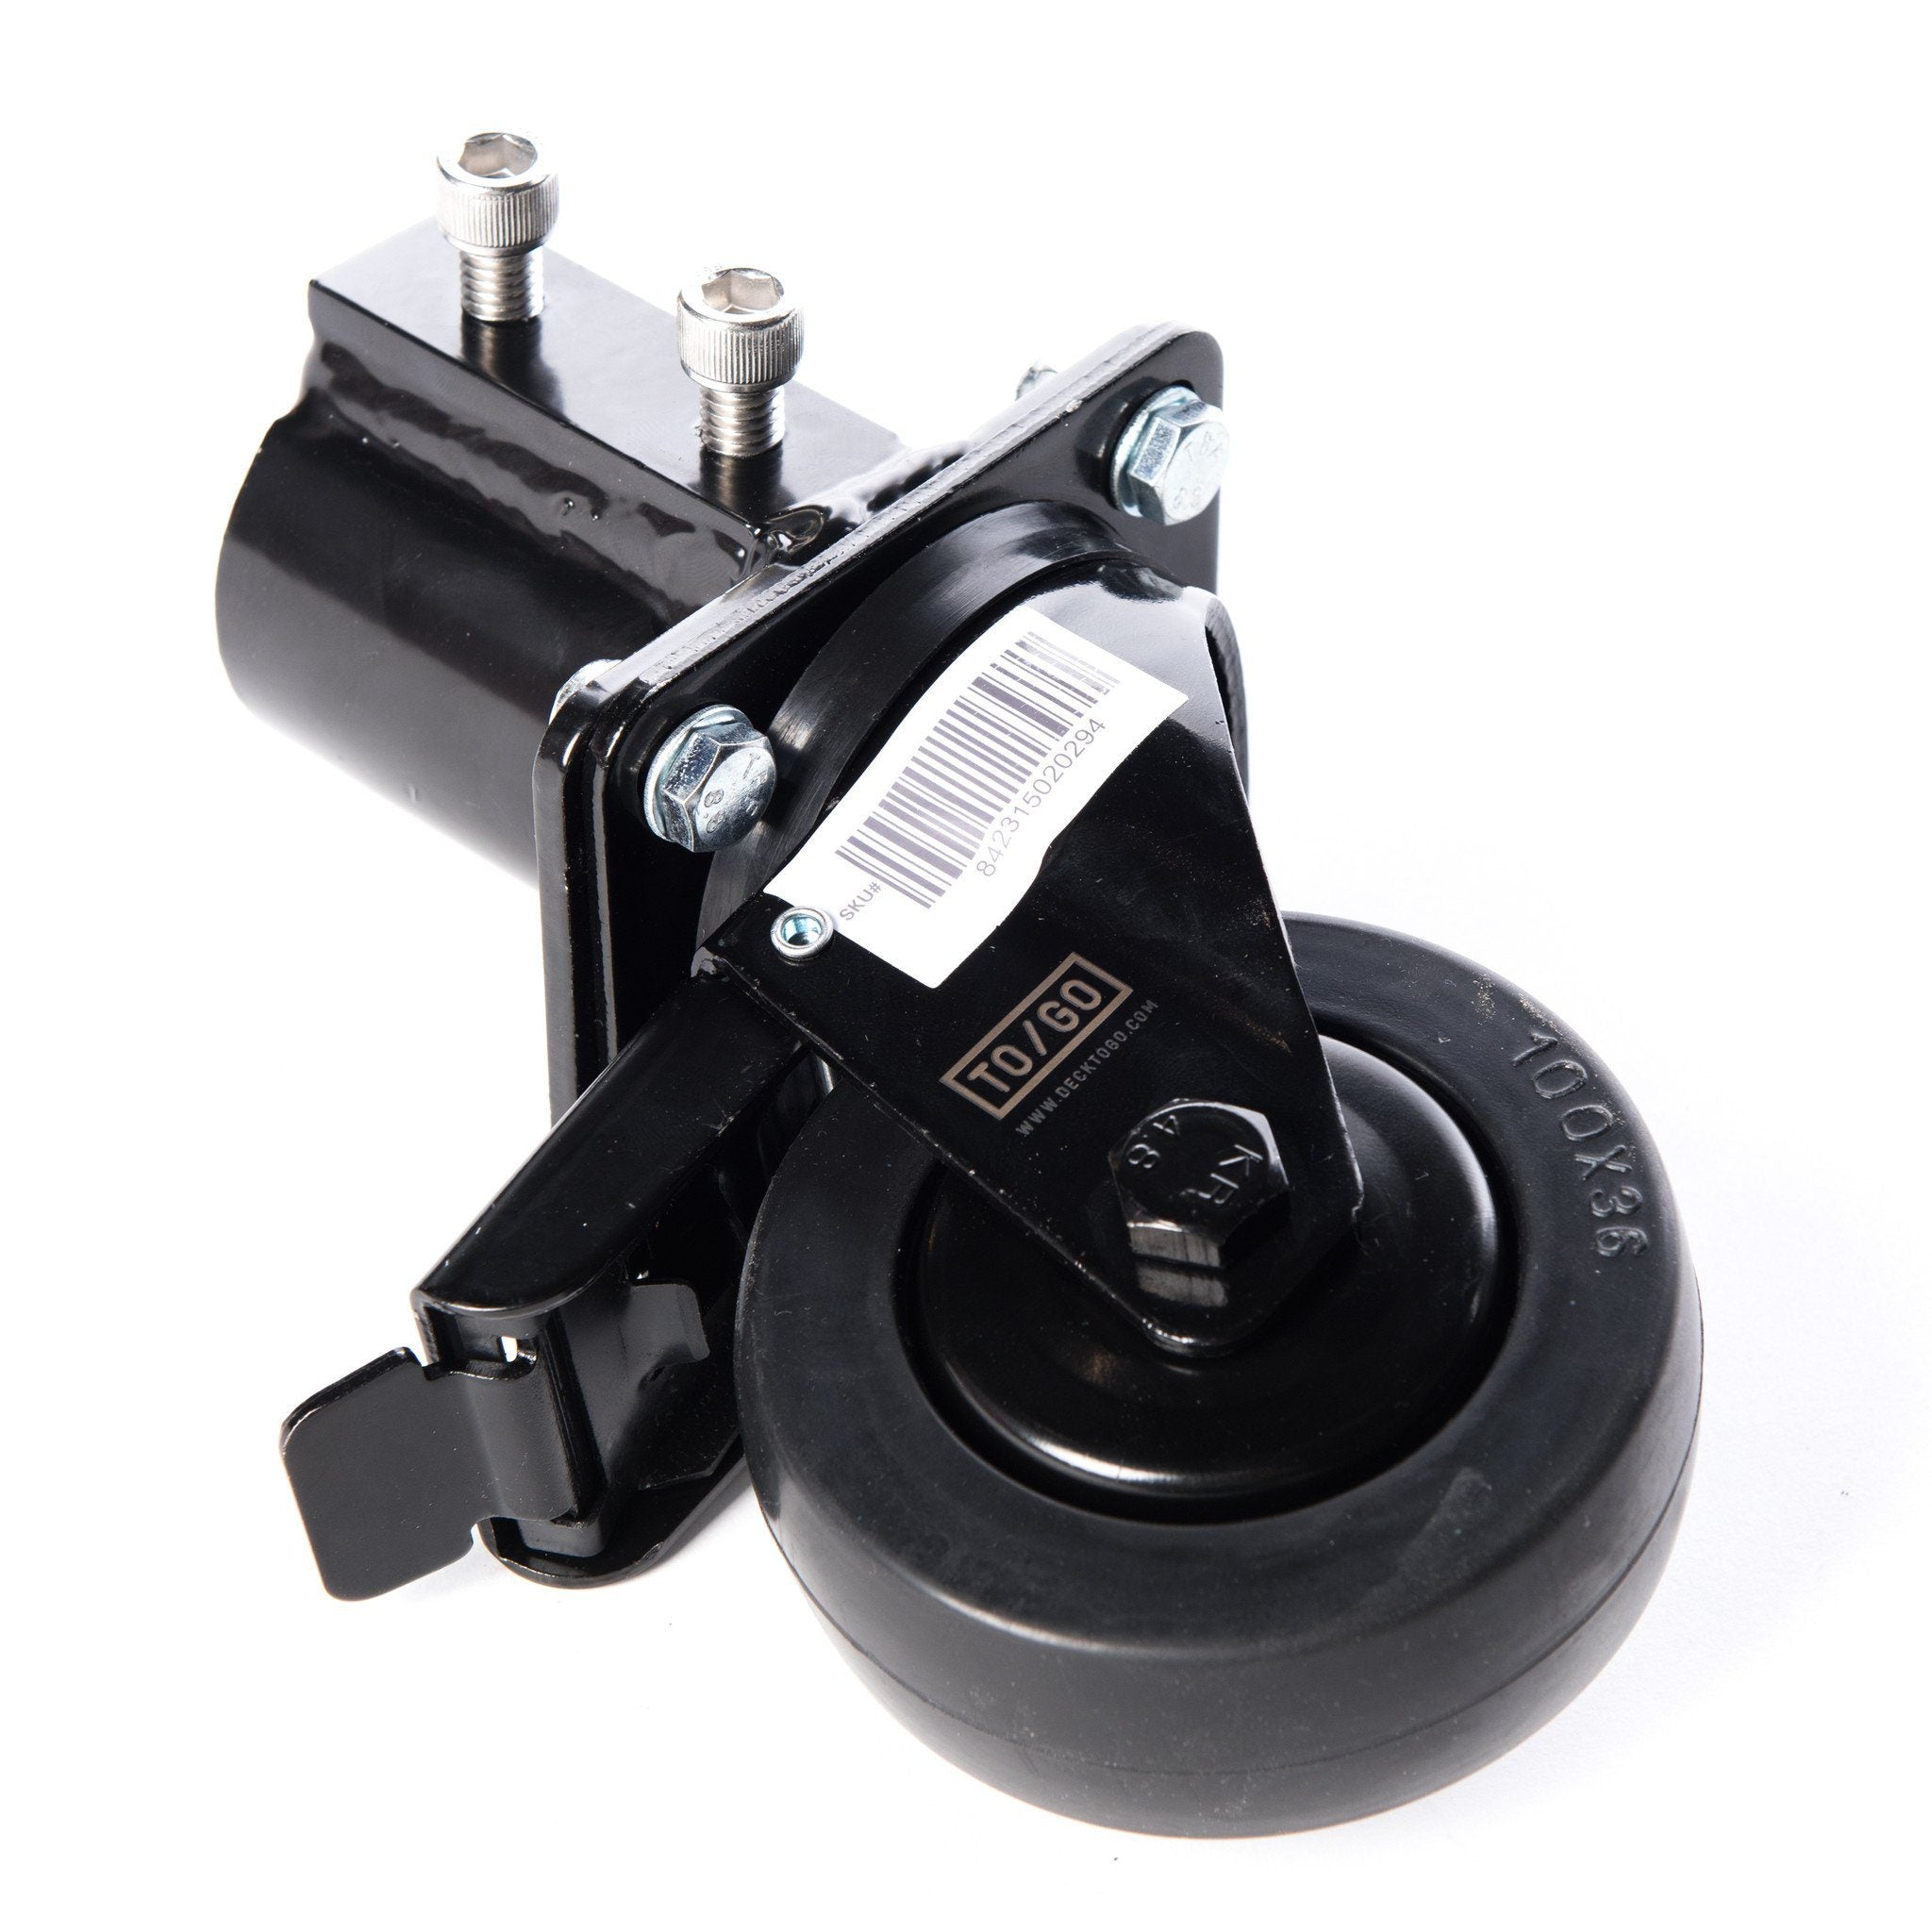 Black Wheel Bracket (includes wheel) Locking